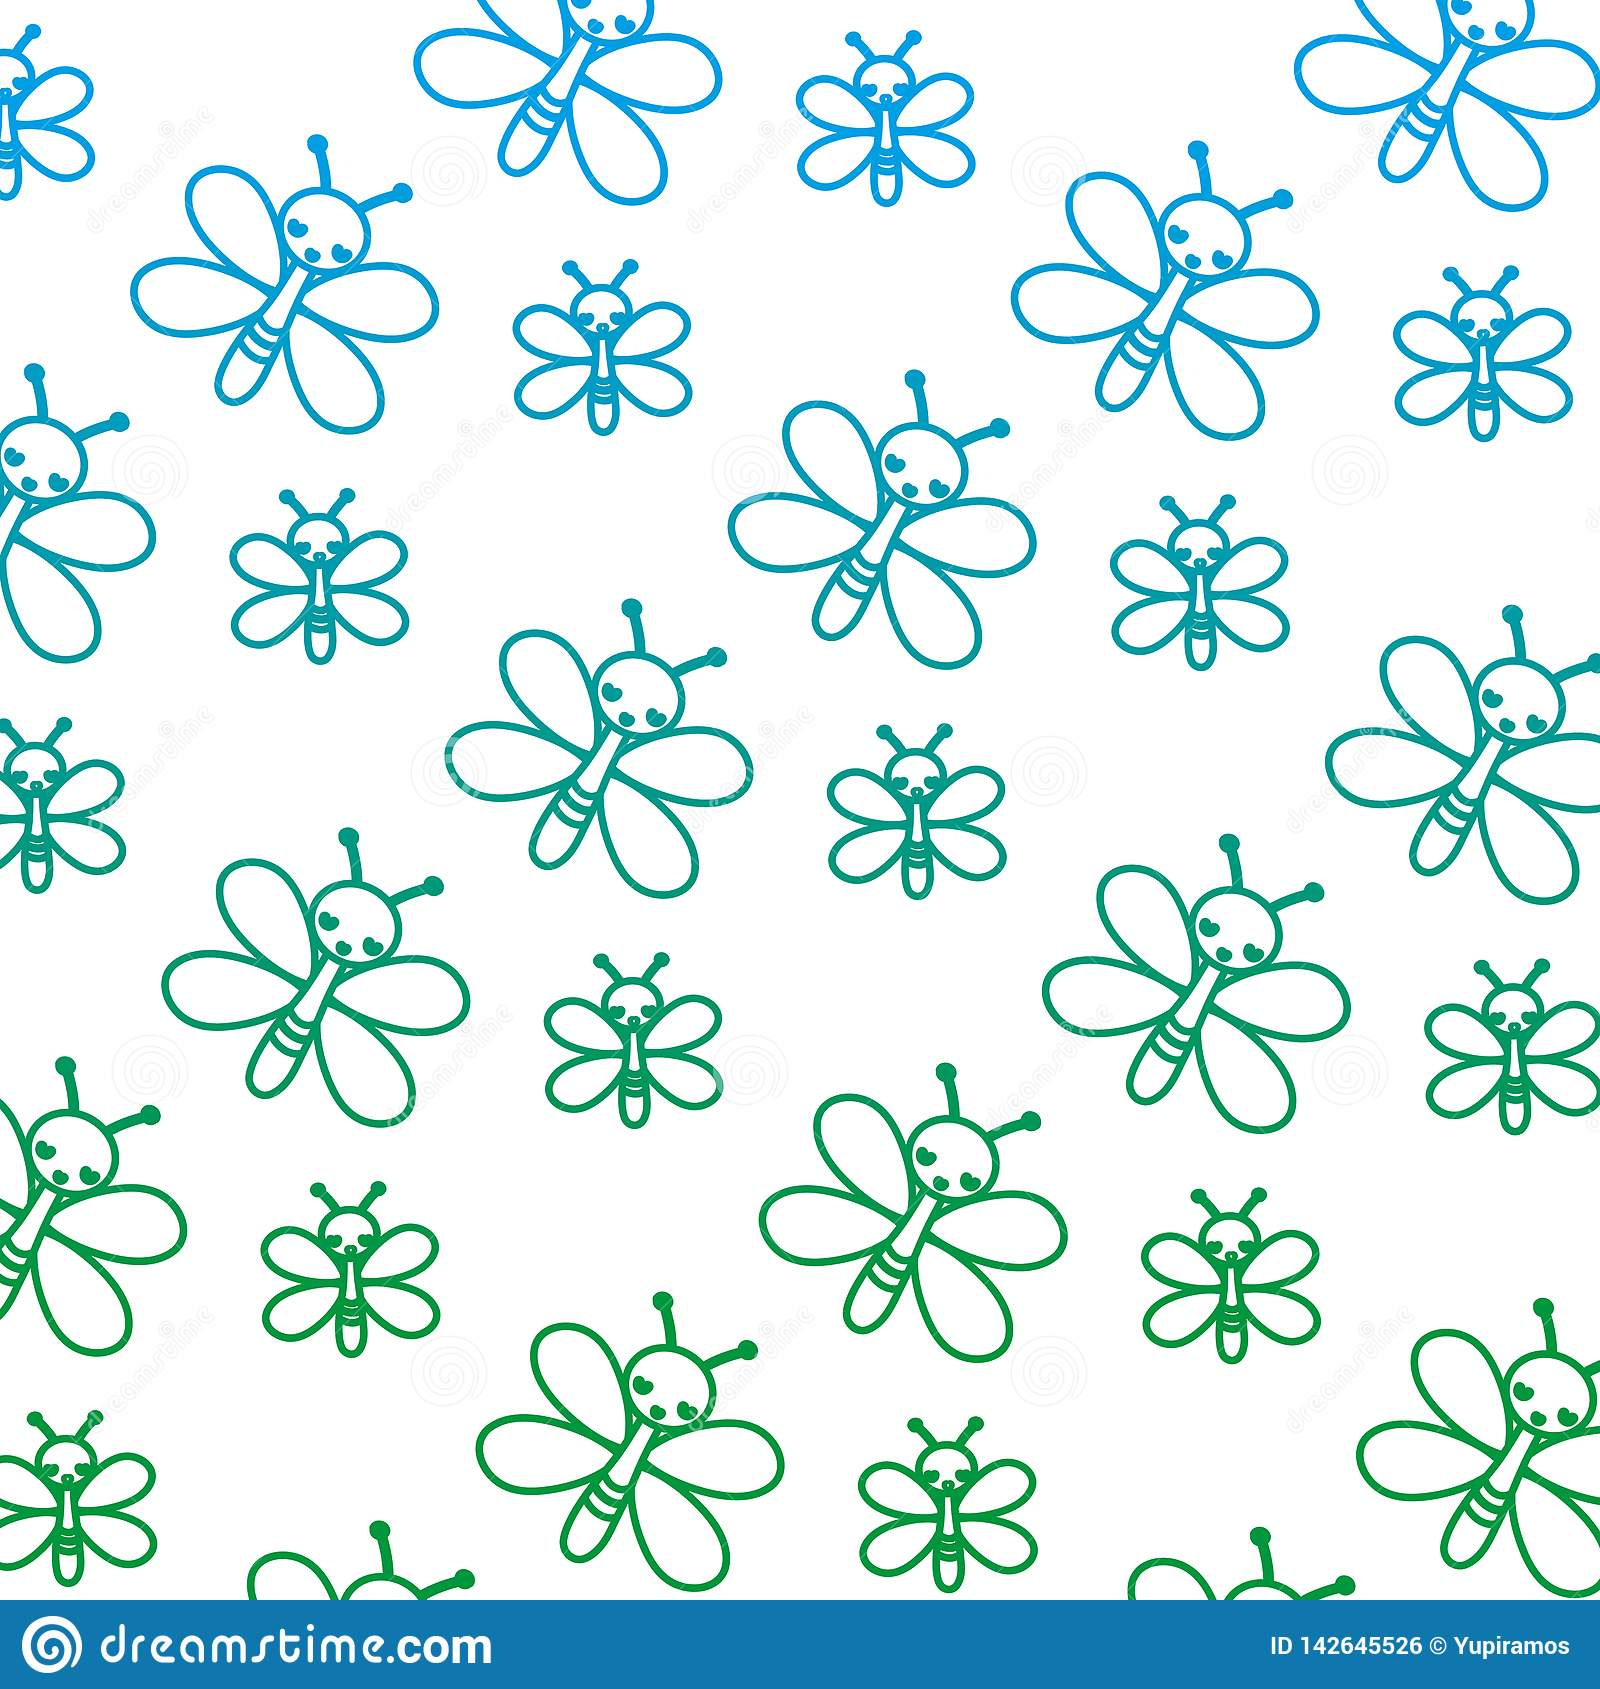 Degraded line cute butterfly insect animal background